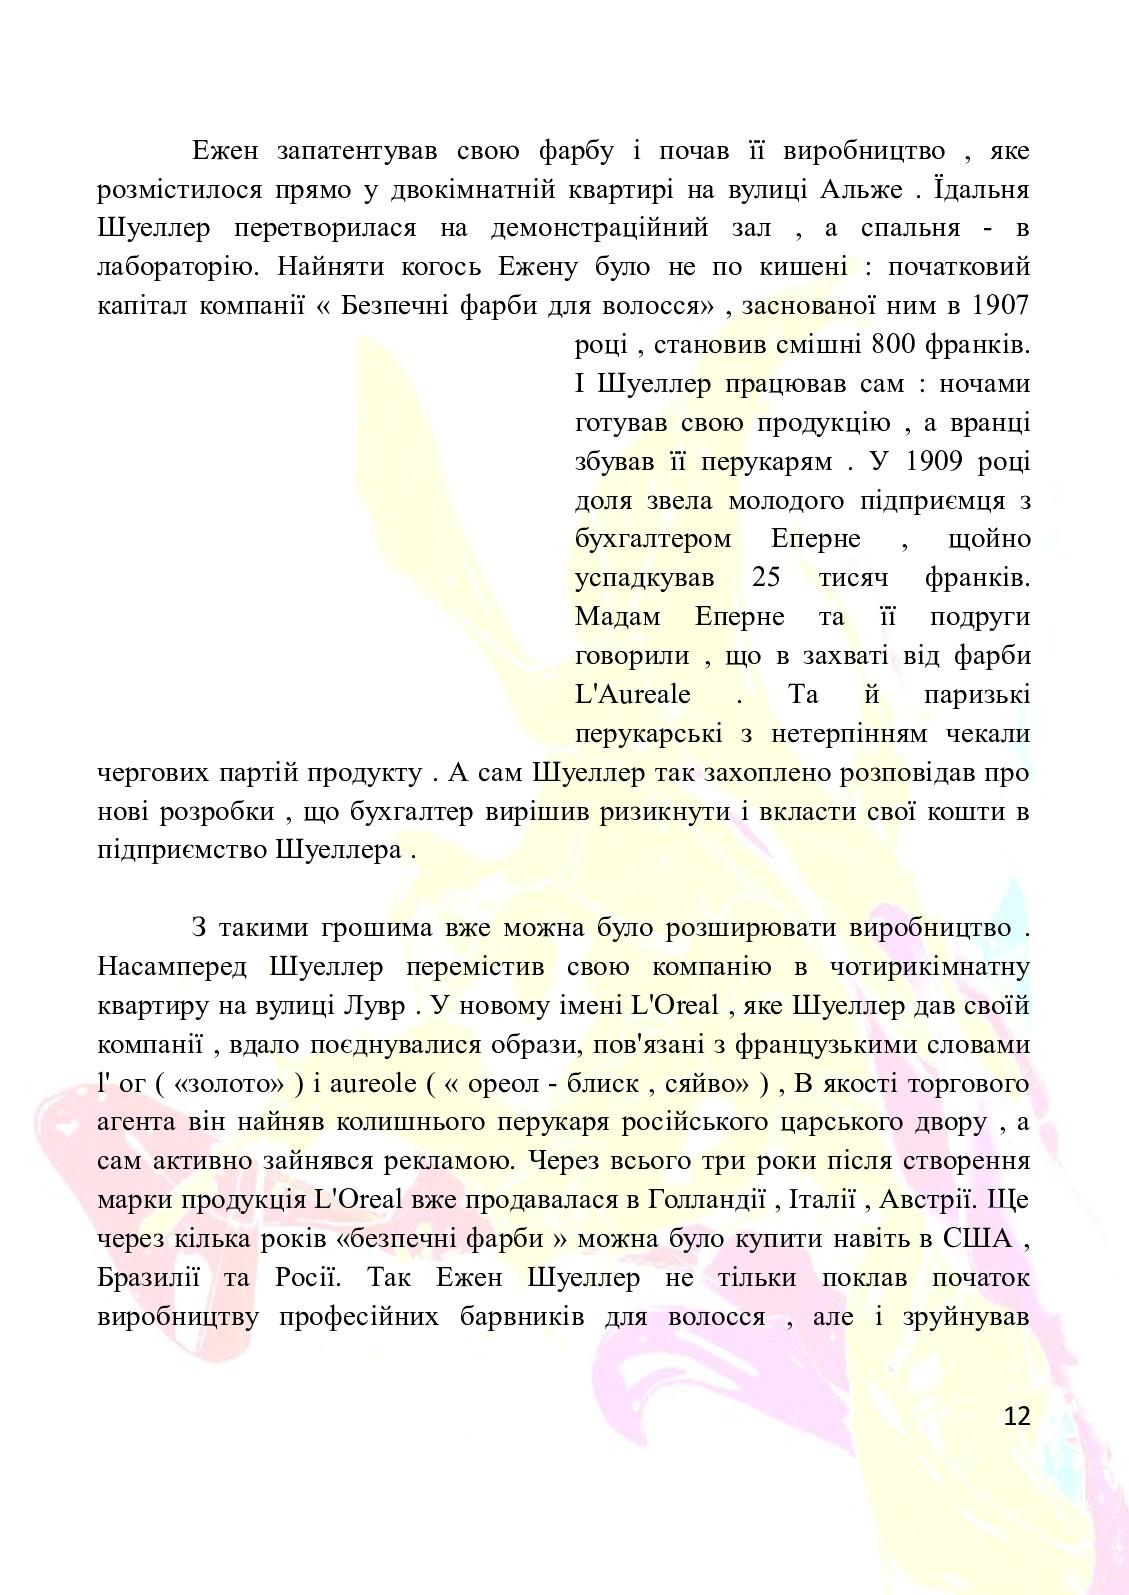 Page 12